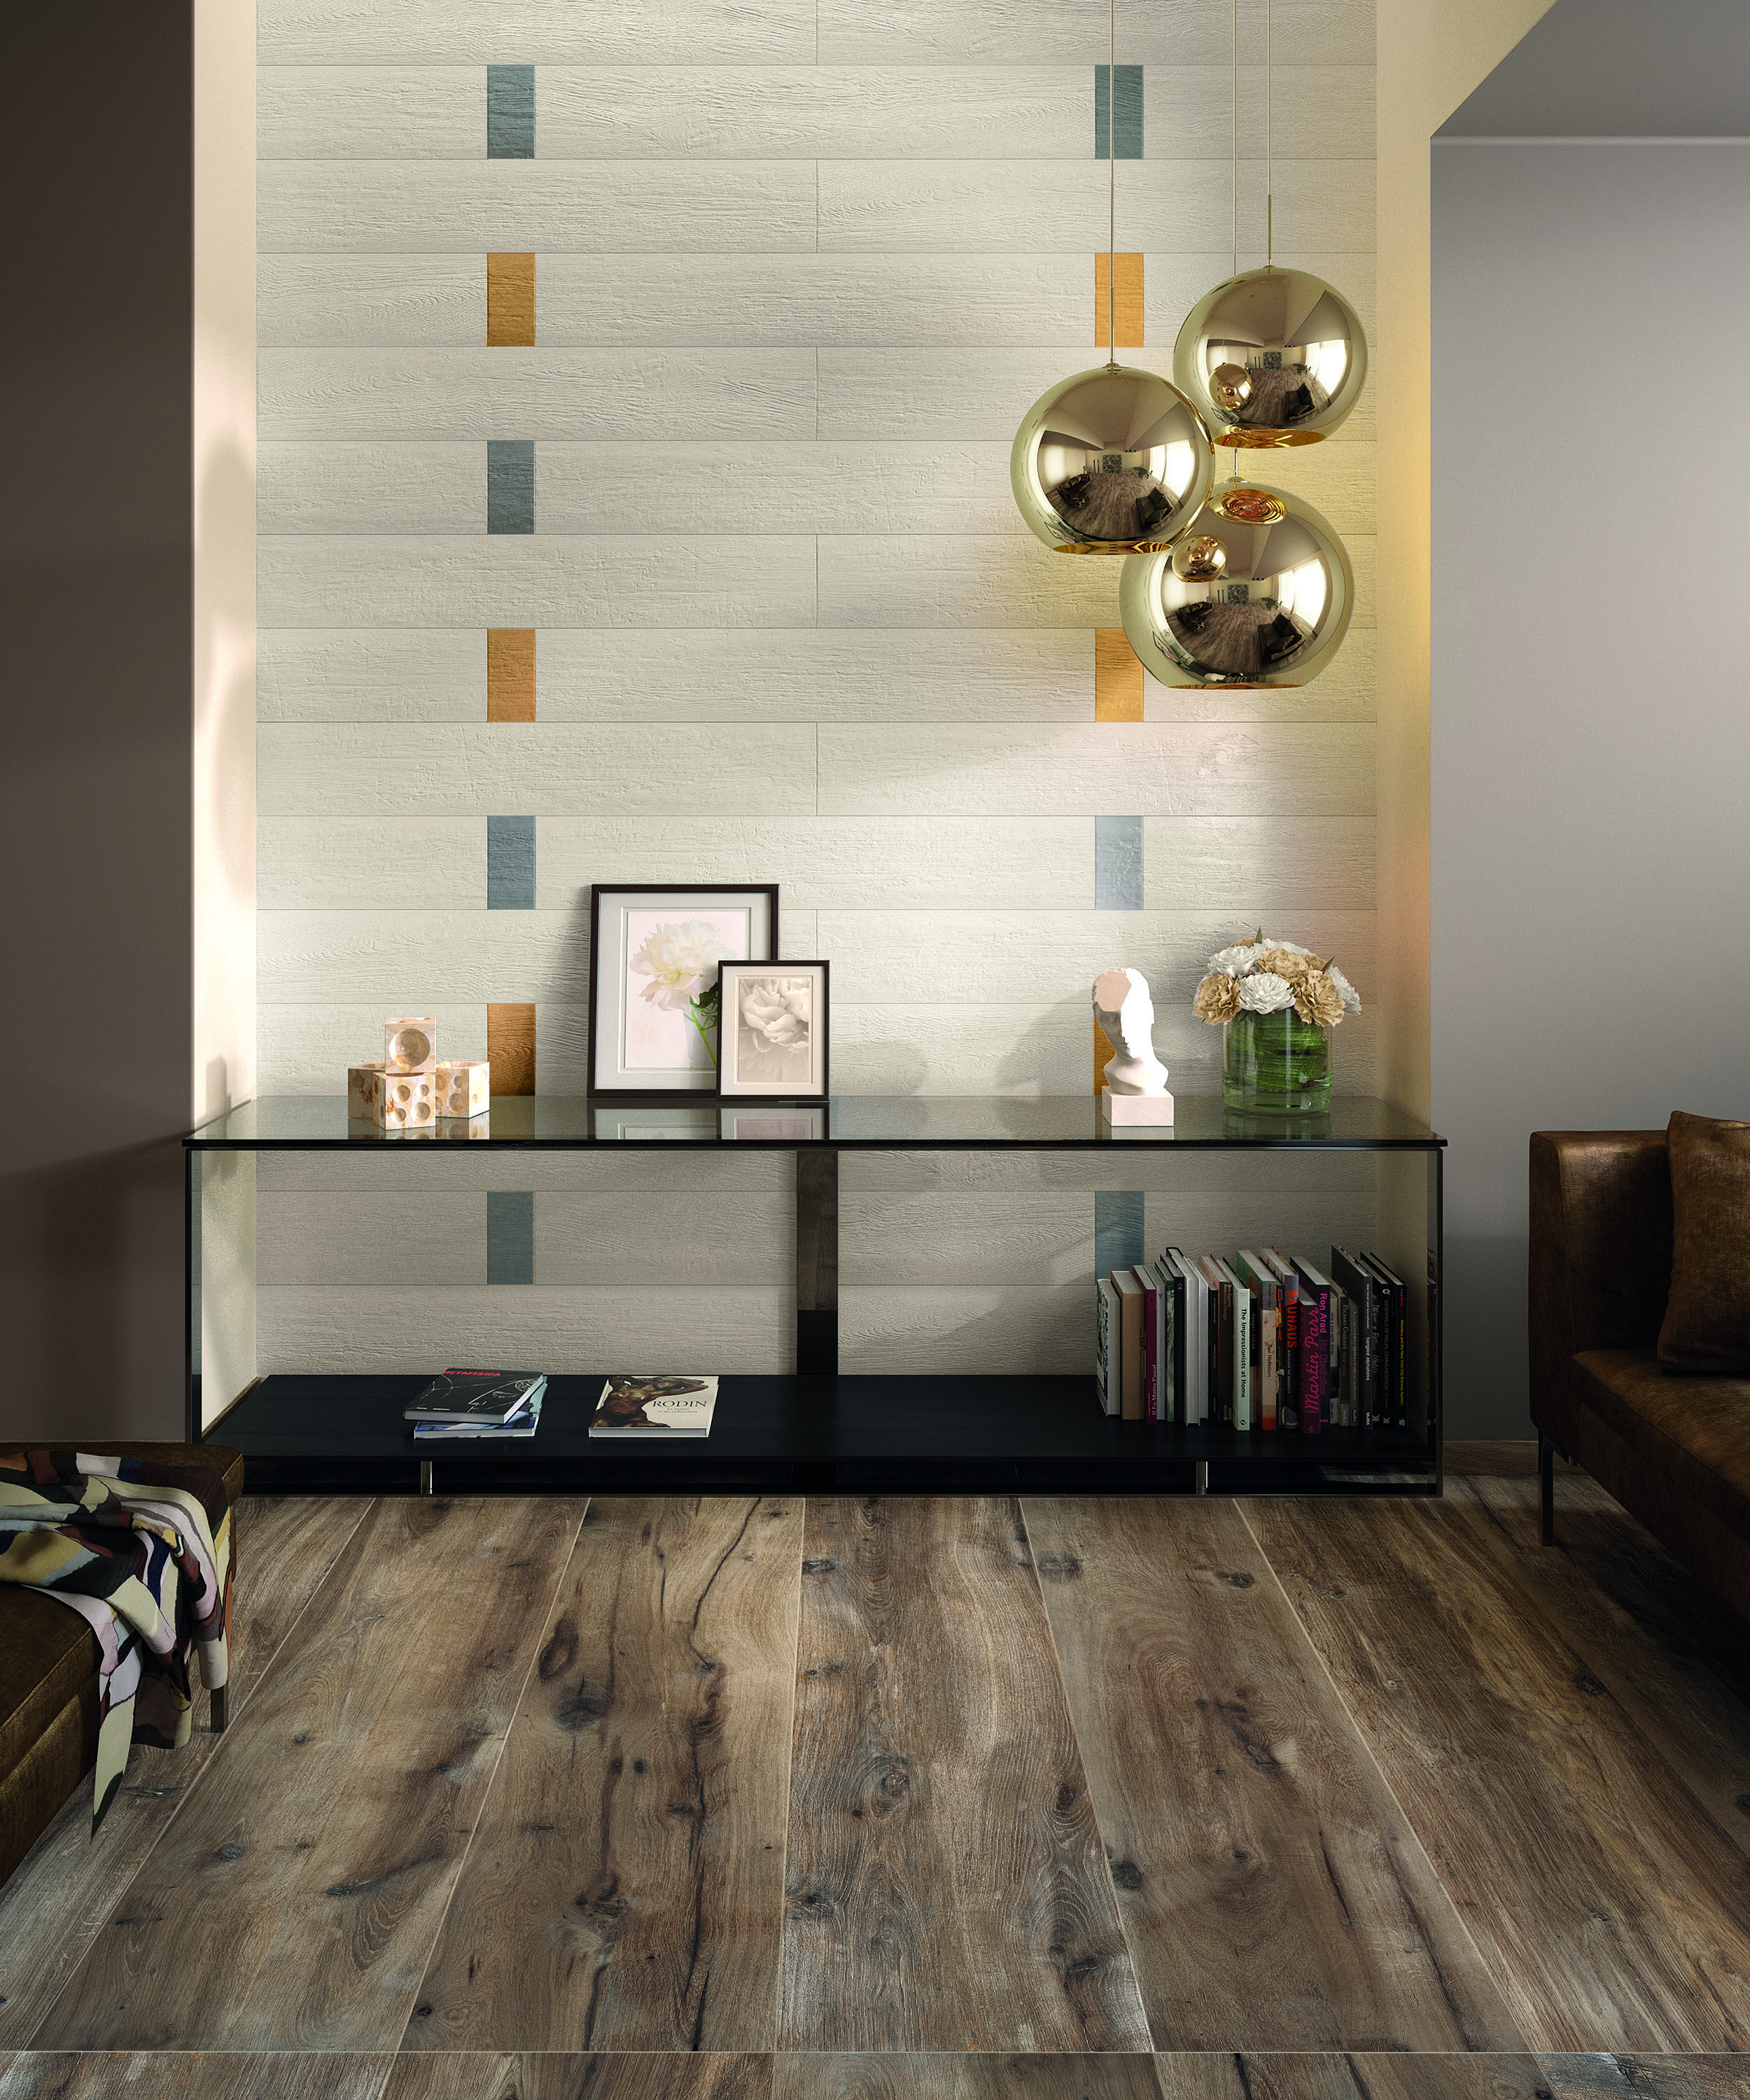 Pin By Hengory Sheen On Representatives Ions Luxury Interior